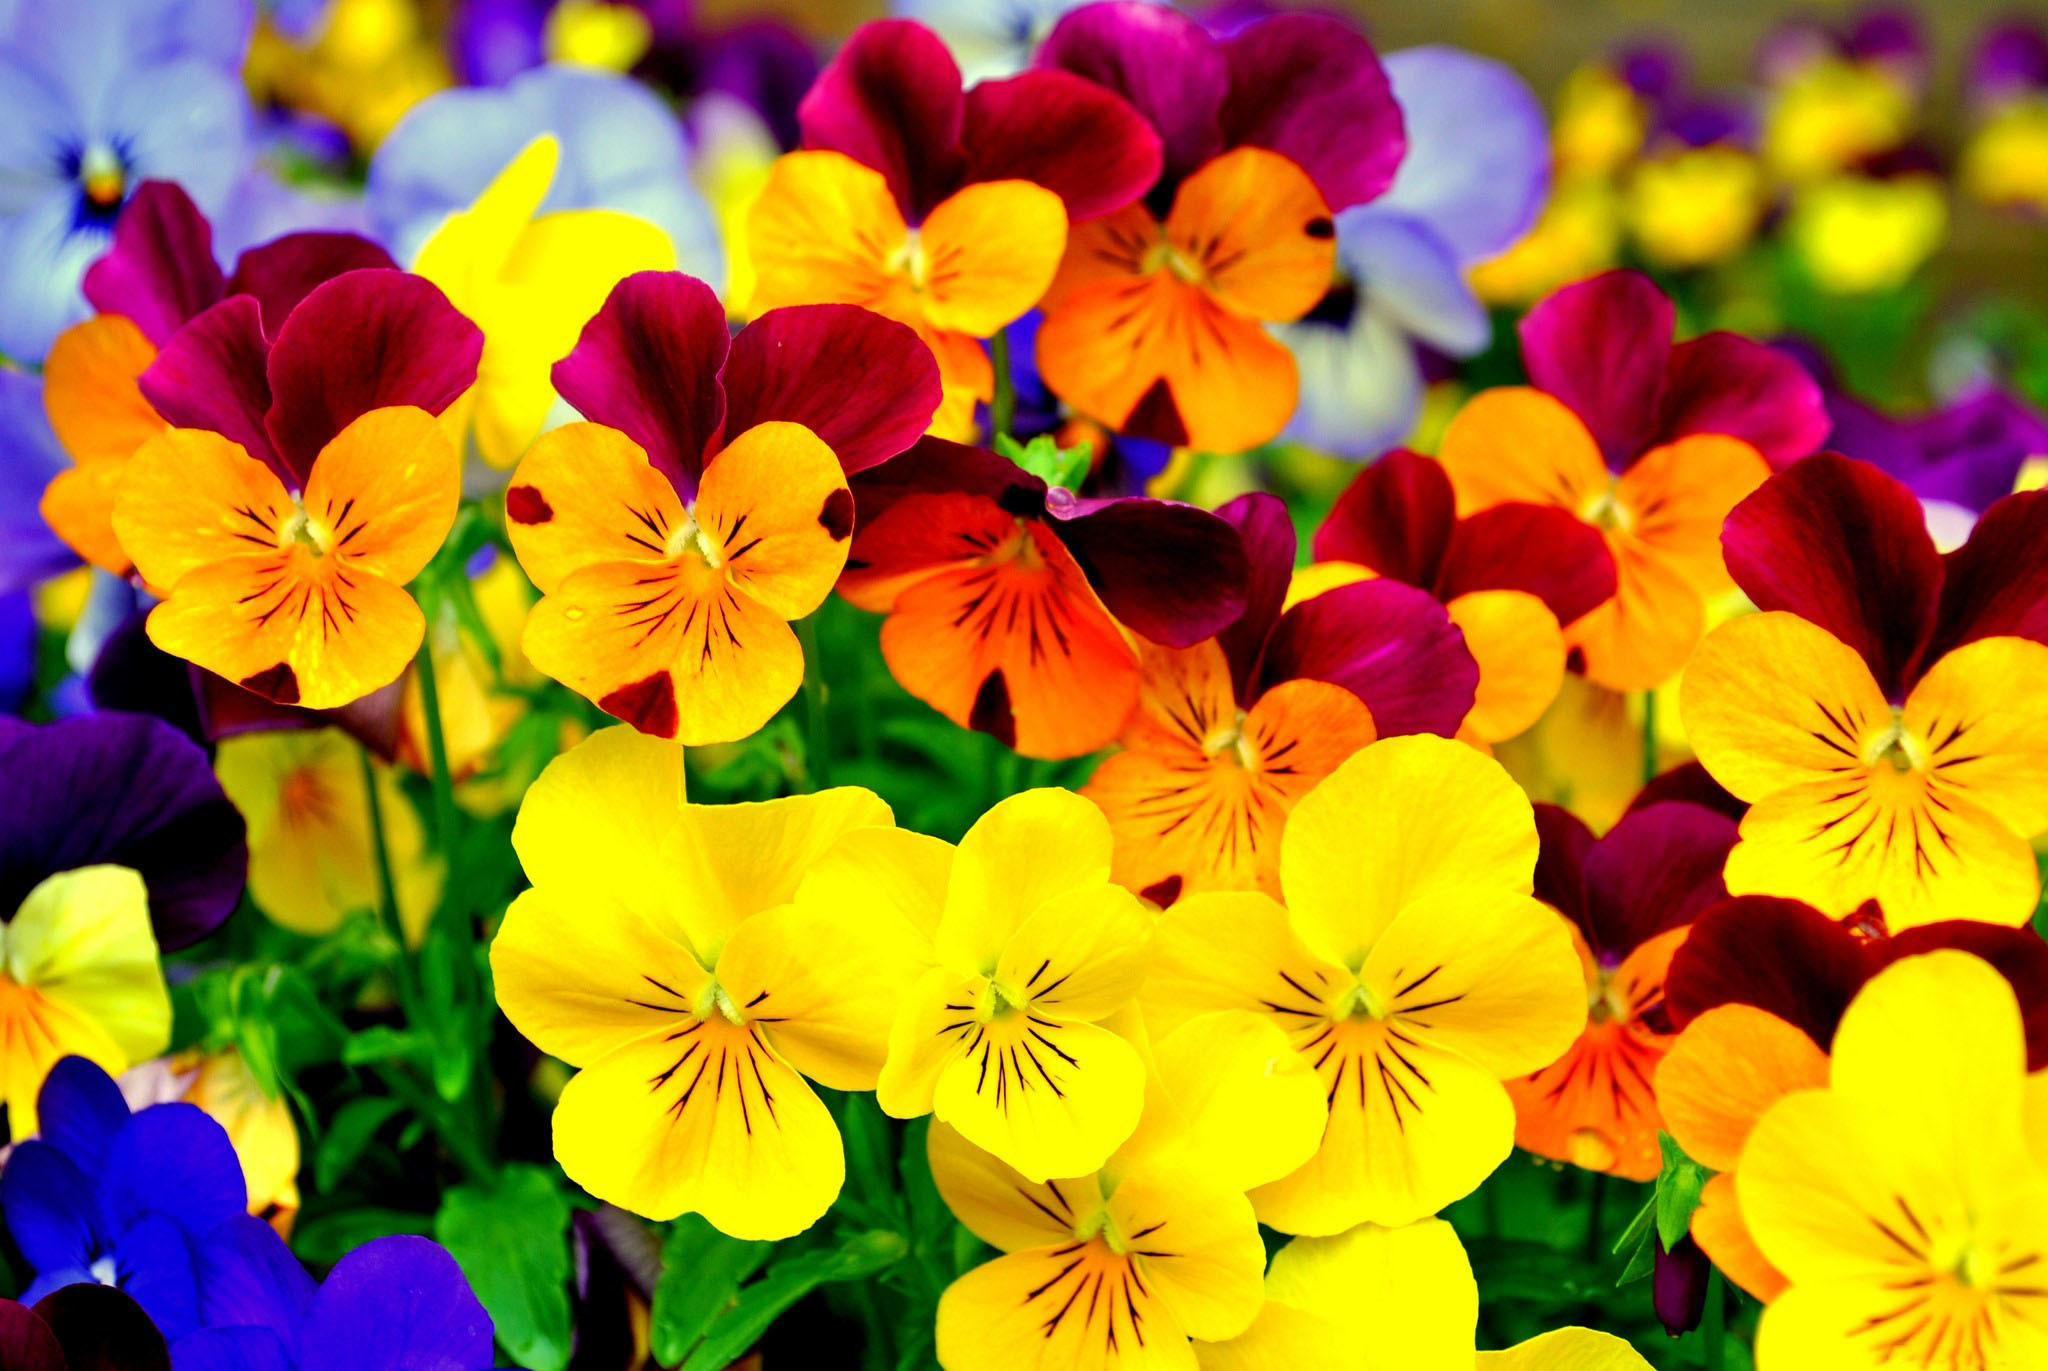 80 Pansy HD Wallpapers | Backgrounds - Wallpaper Abyss